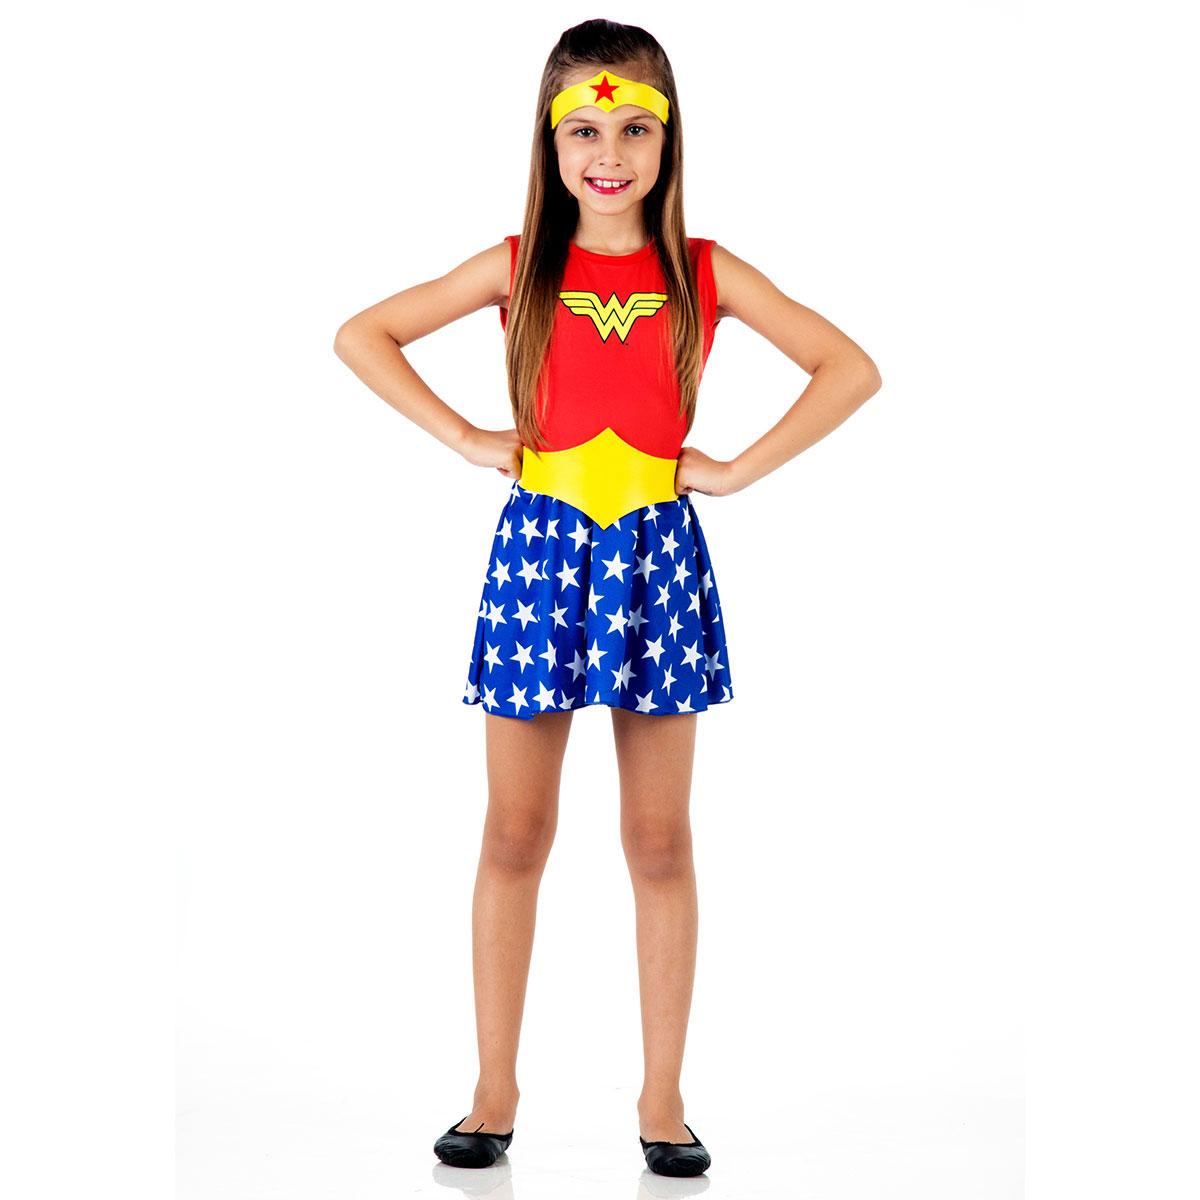 Fantasia Infantil Wonder Woman Pop